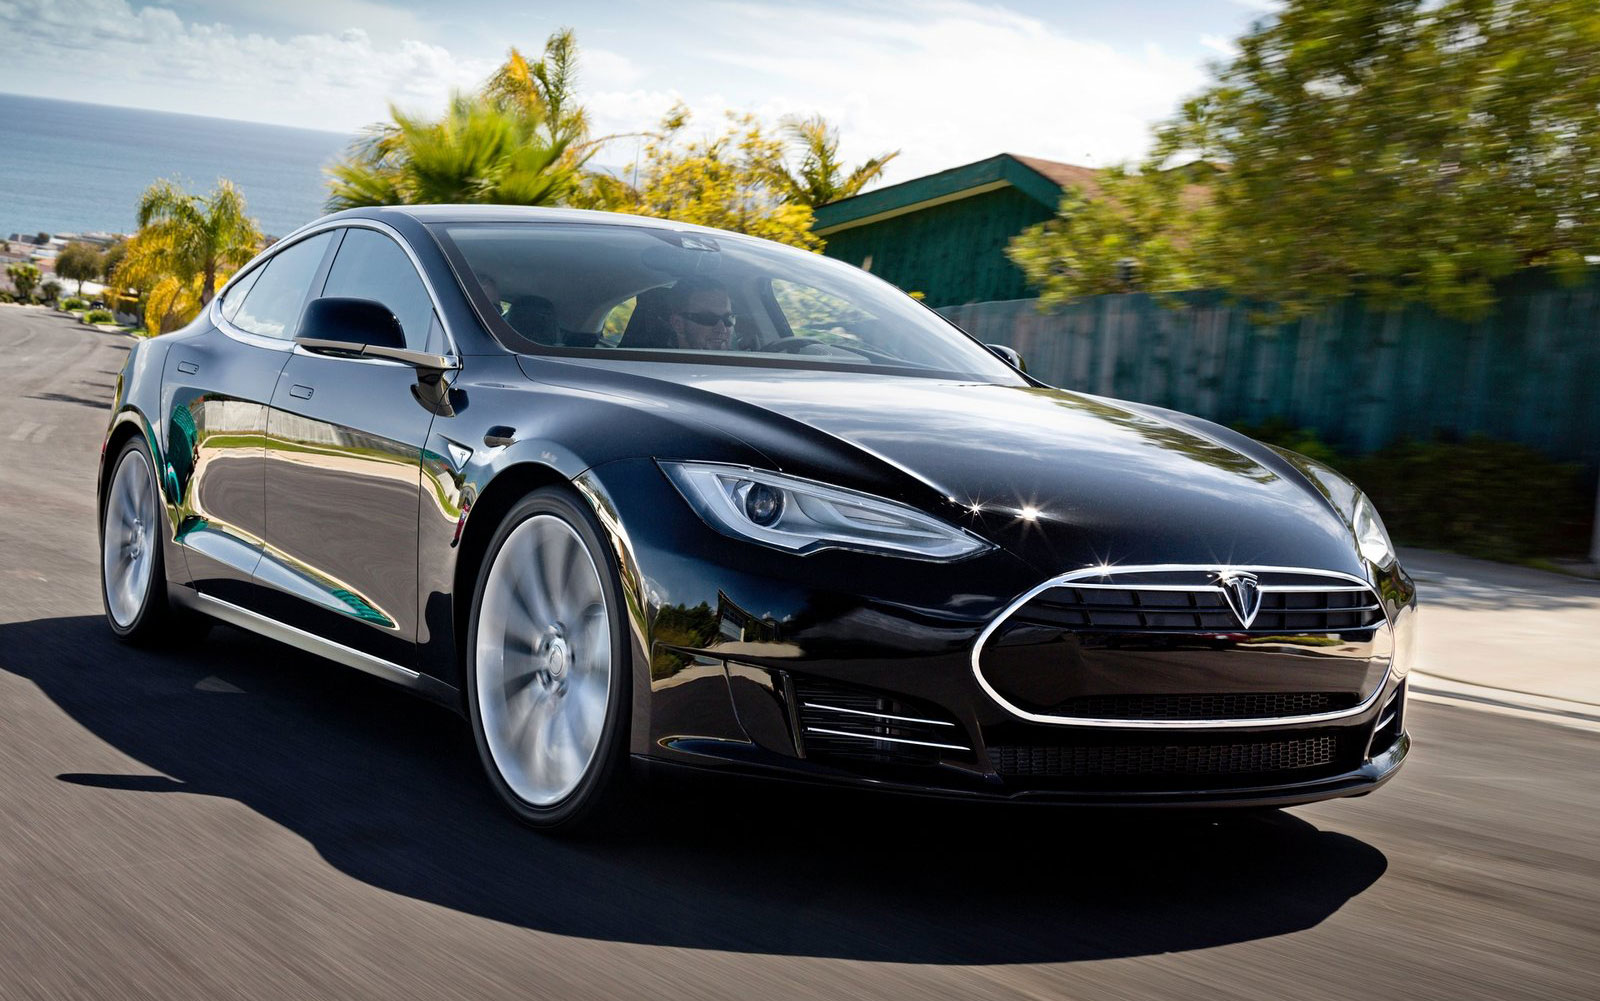 European Car Of The Year Top Seven Finalists Image - 2014 tesla model s